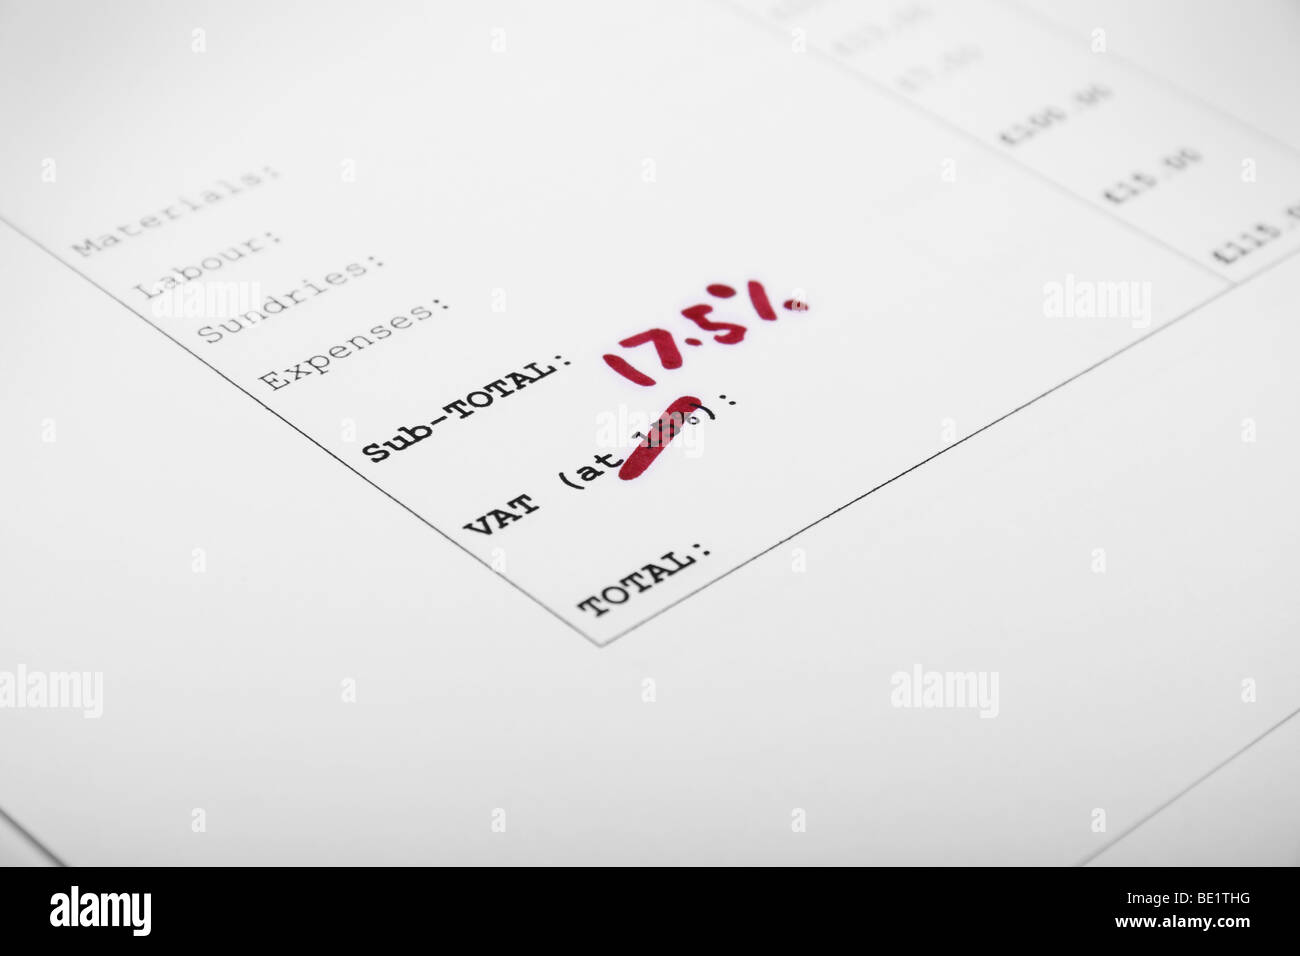 Invoice showing VAT increase - Stock Image